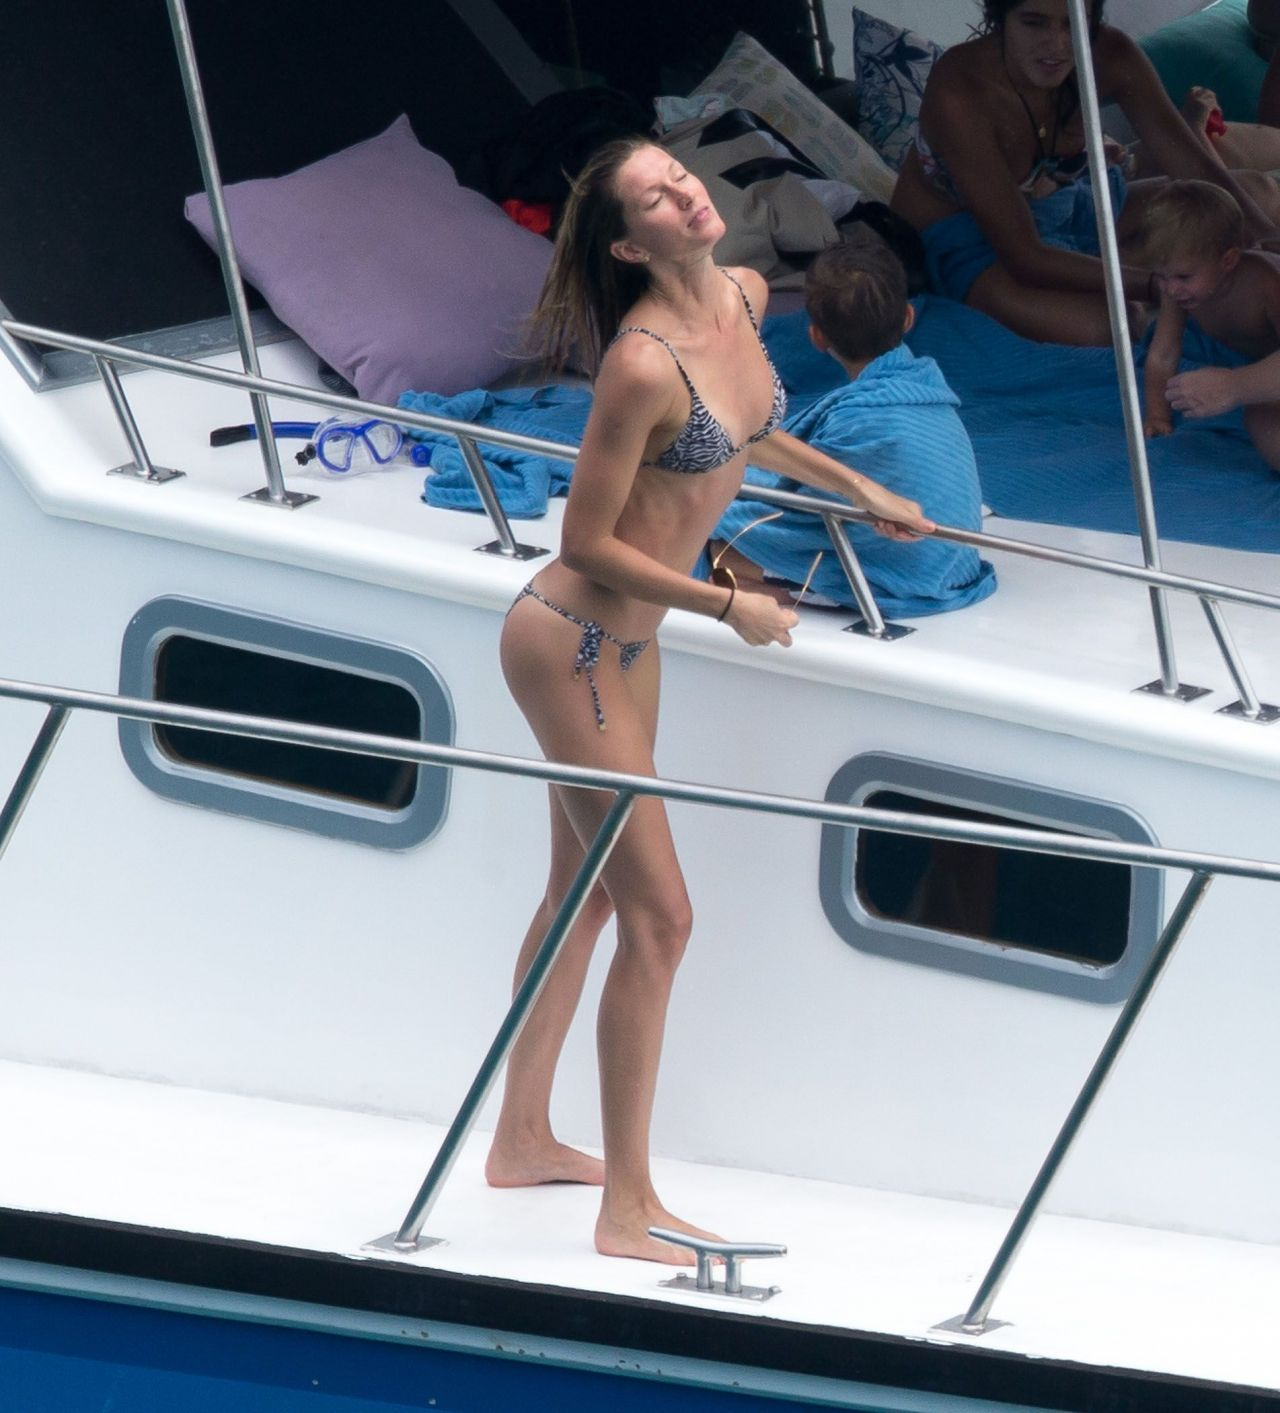 Gisele Bundchen Bikini Candids - on a Yacht in Brazil - April 2014